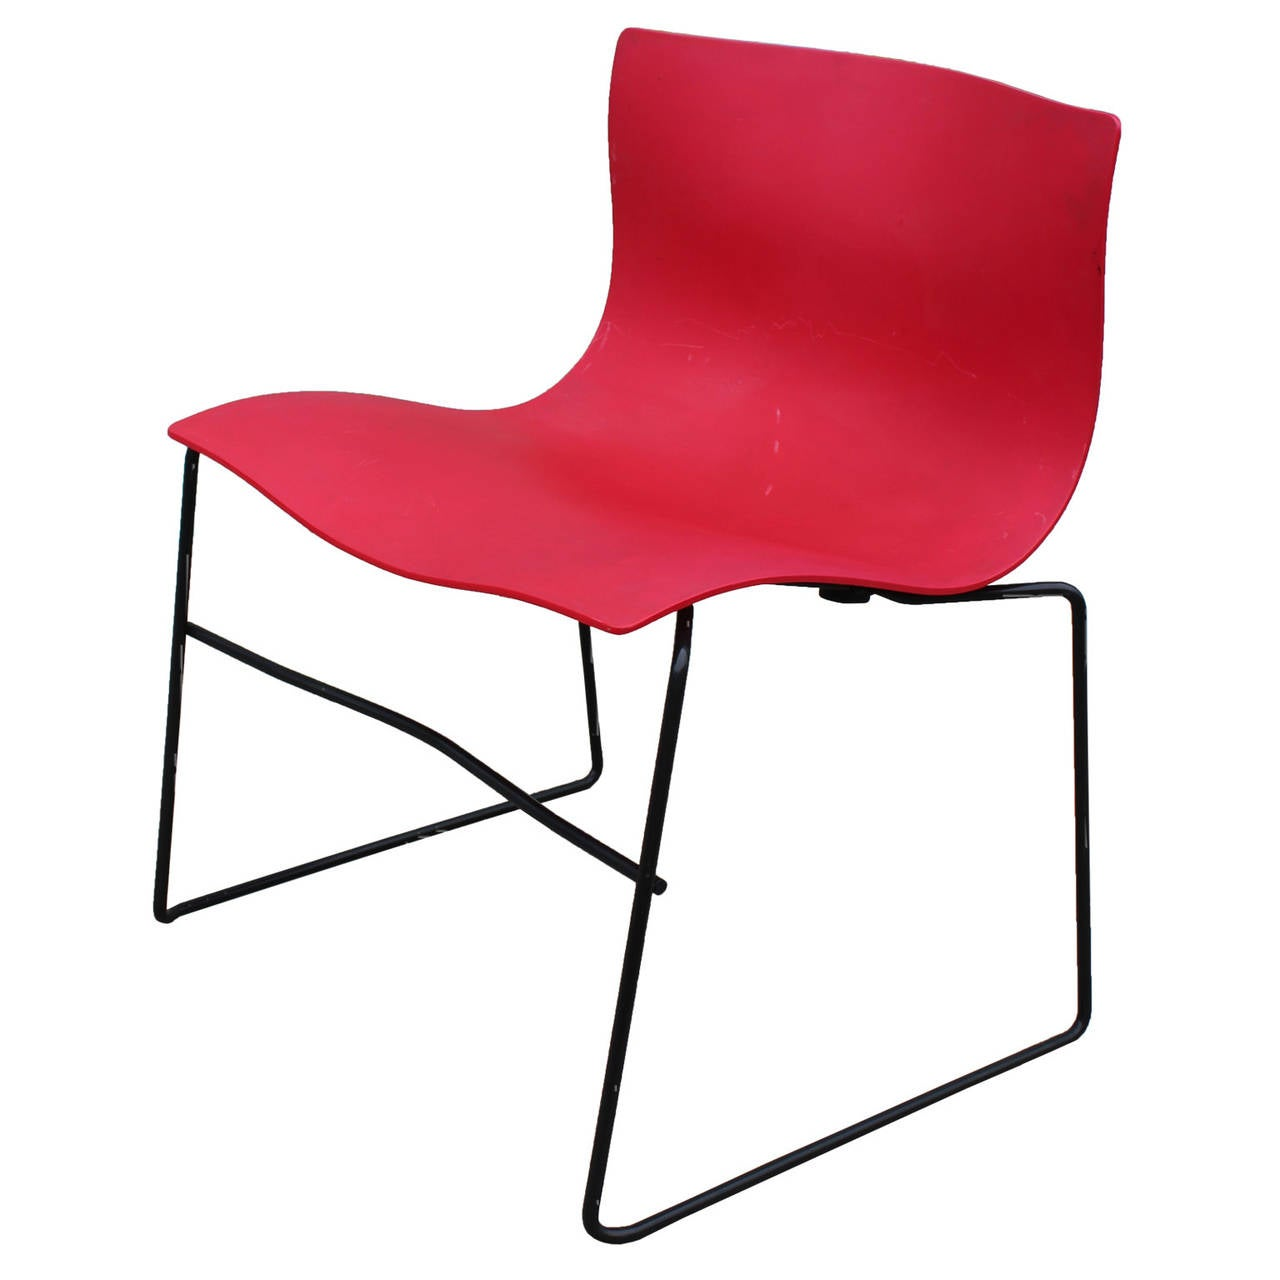 Set Of 6 Red Knoll Handkerchief Chairs By Massimo Vignelli At 1stdibs